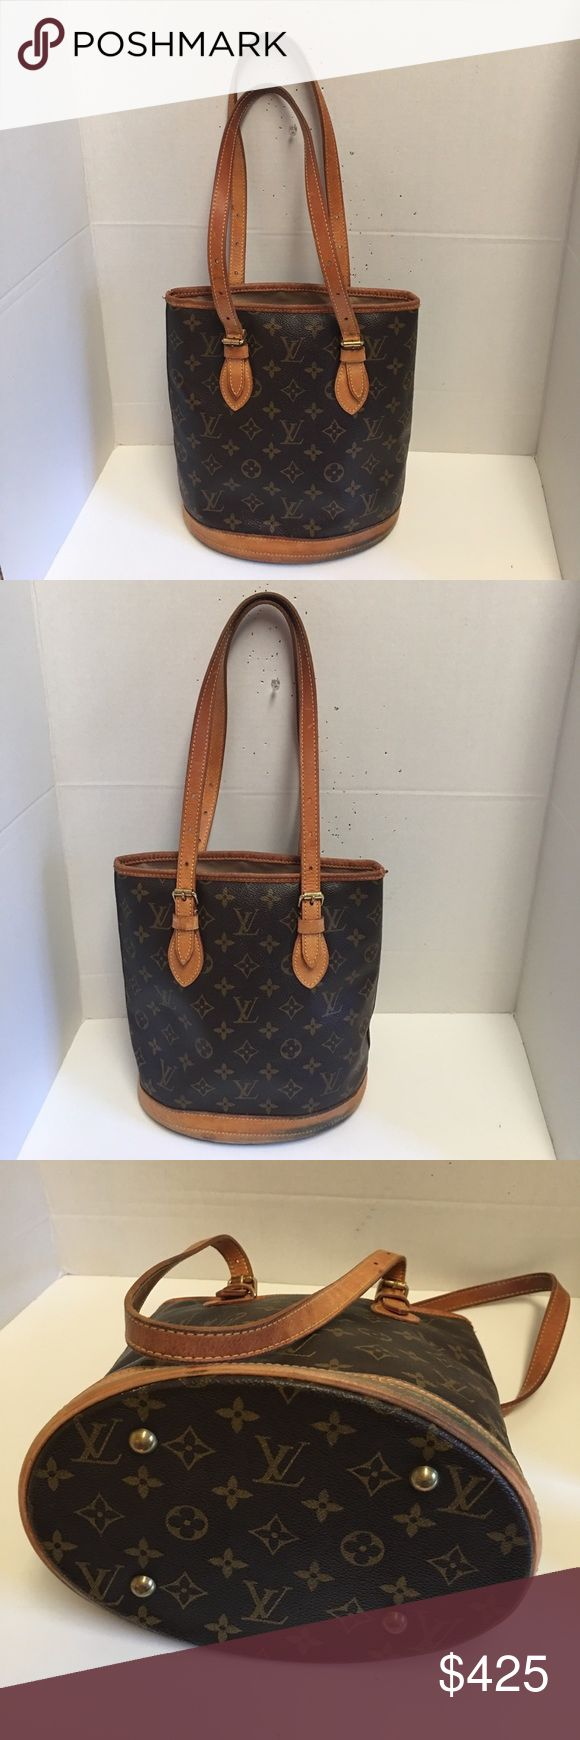 Authentic Louis Vuitton p.m. abucket bag Authentic Louis Vuitton p.m. bucket bag. Good condition. Does have some discoloration and aging on the bottom leather trim. Straps are in good condition. To zipper compartment inside. Louis Vuitton Bags Totes